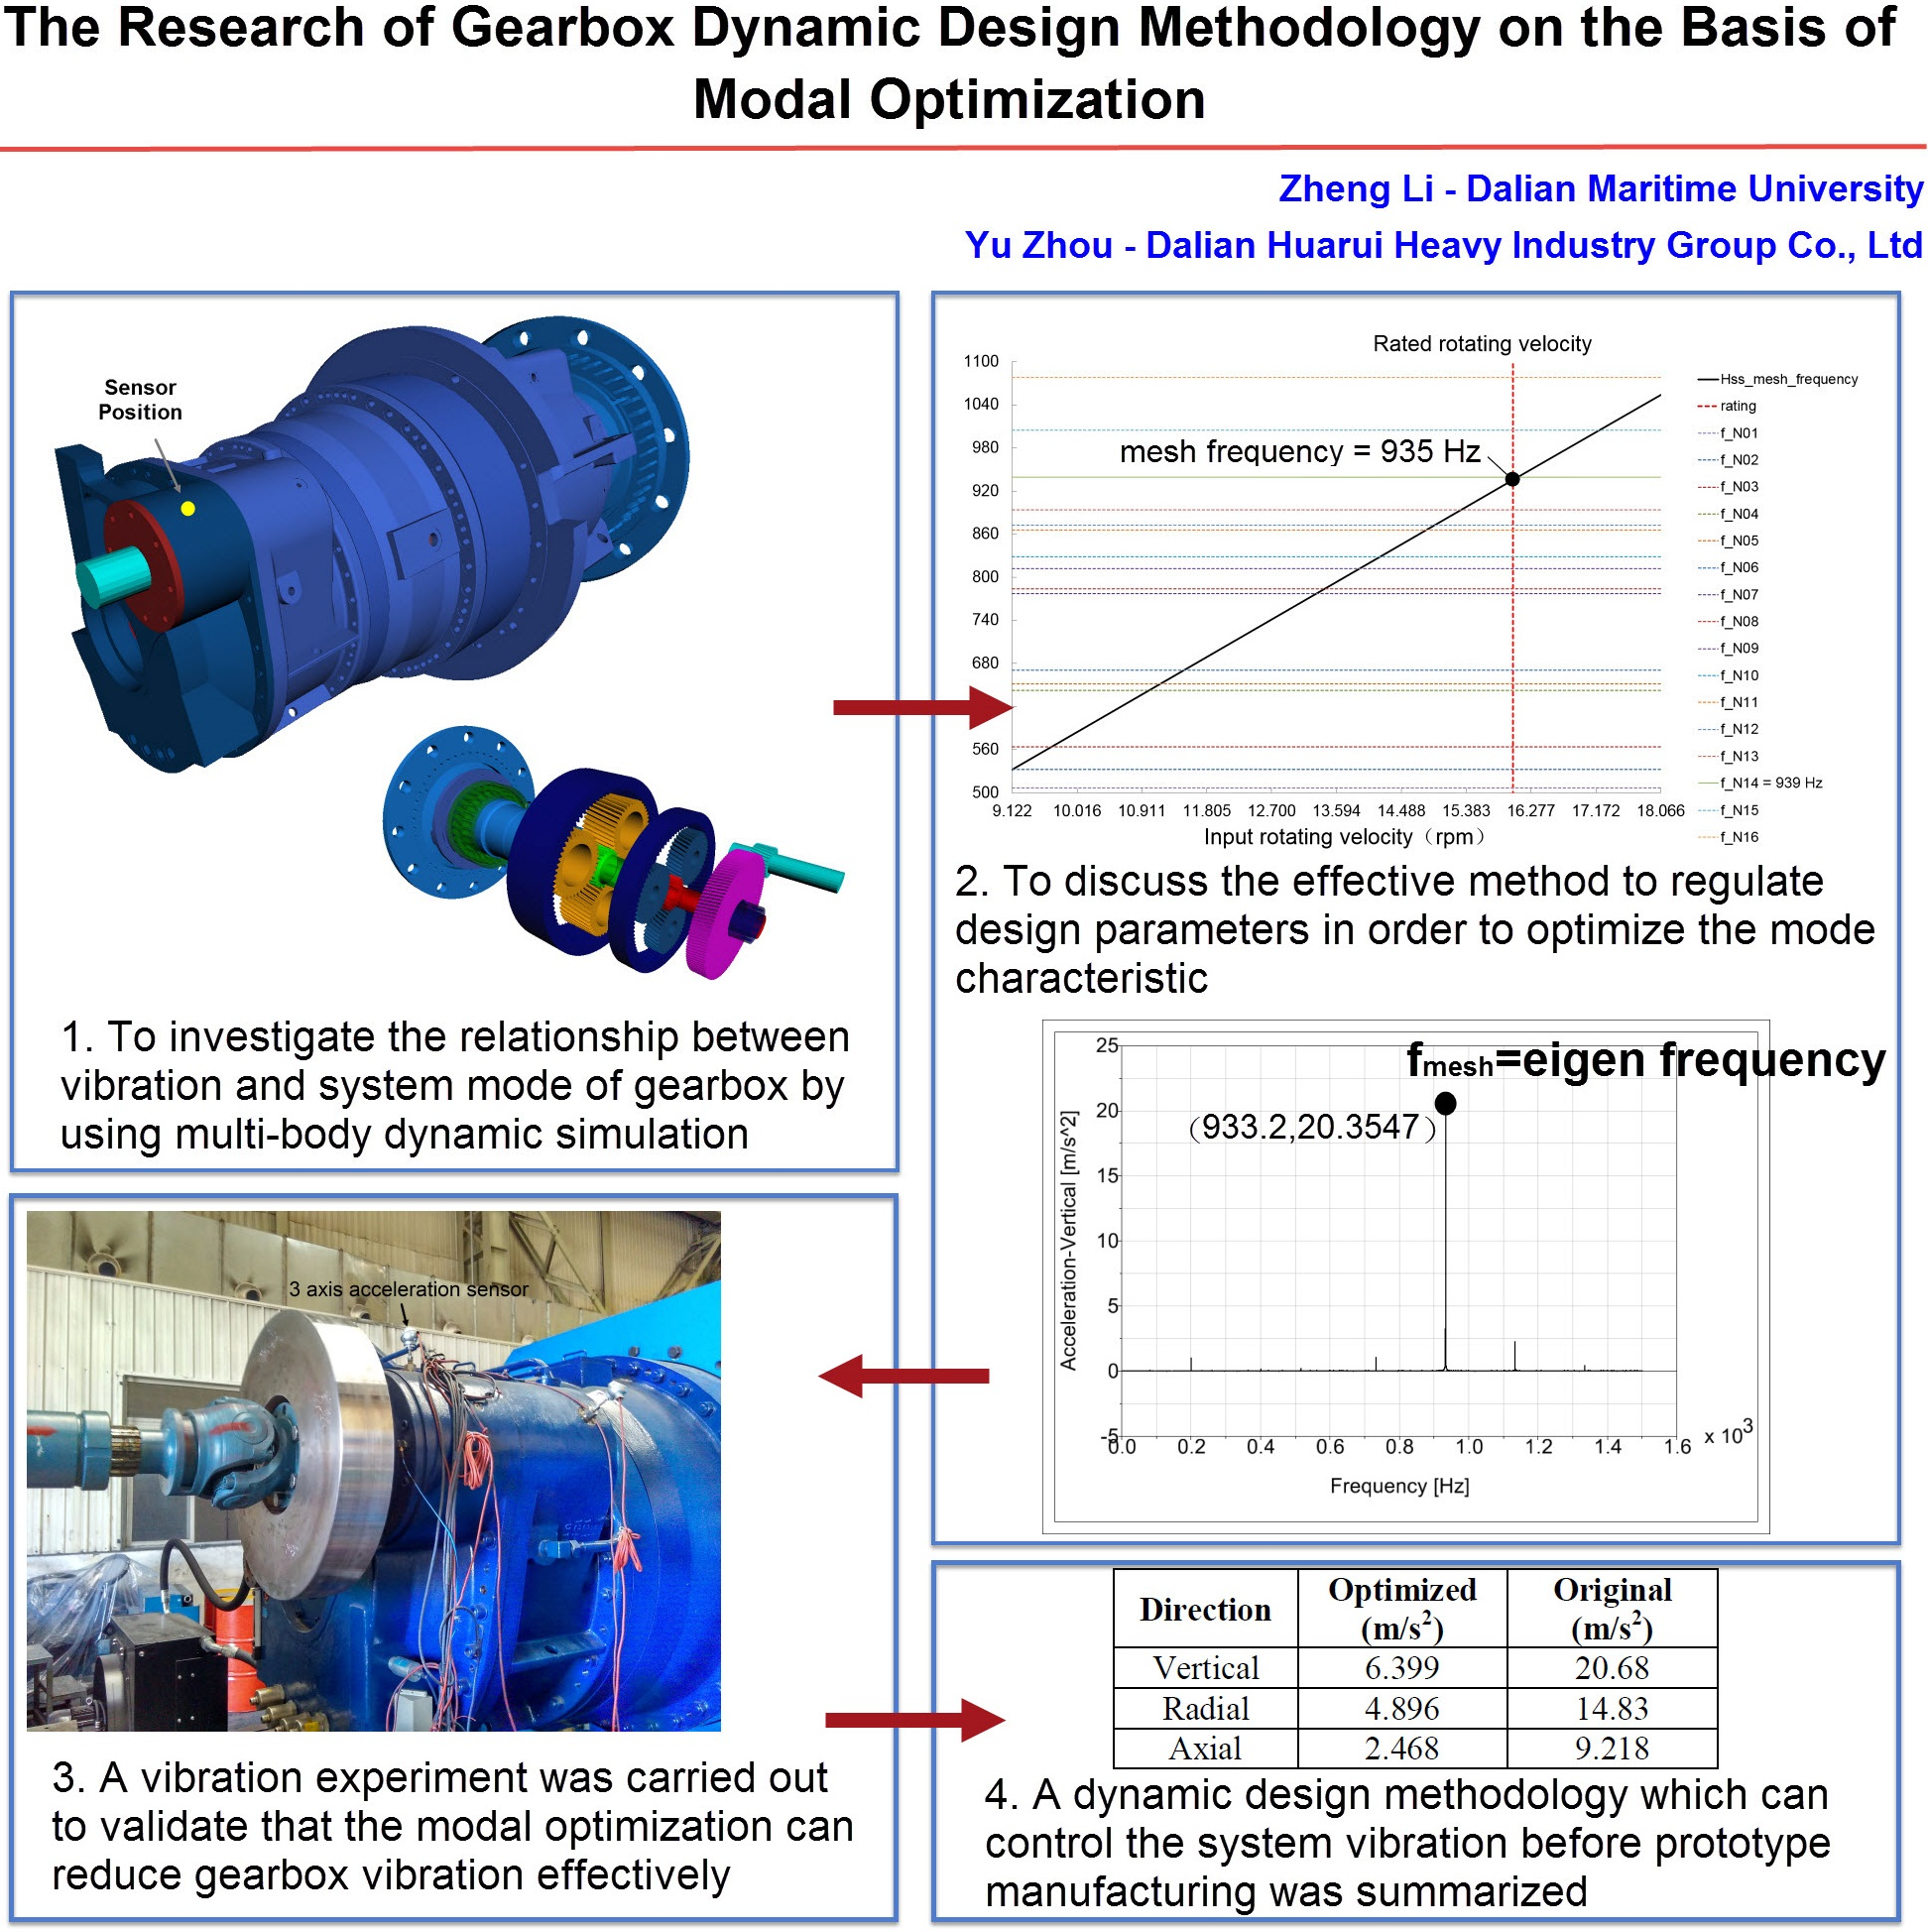 Research on gearbox dynamic design methodology based on modal optimization